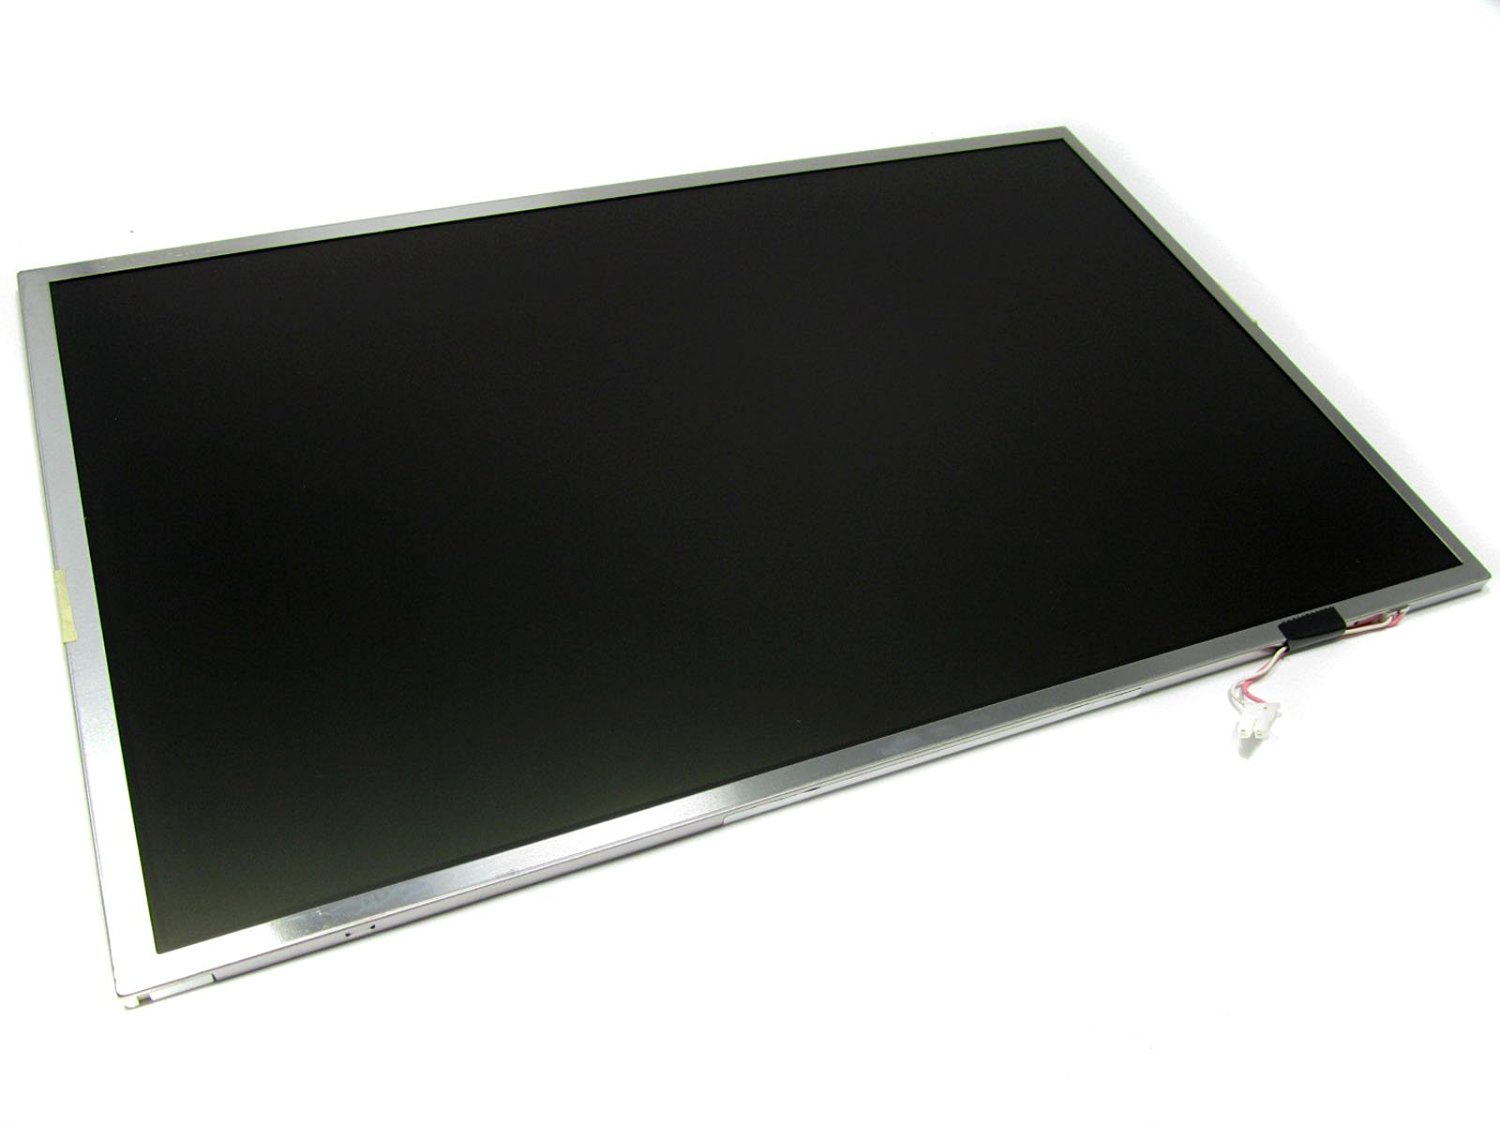 Cheap Ltn141 L05 Lcd Panel Find Deals On Line Removing And Replacing Parts Dell Latitude C600 C500 Series Service Get Quotations Ltn141w1 L04 L06 New 141 Wxga Glossy Ccfl Replacement Screen